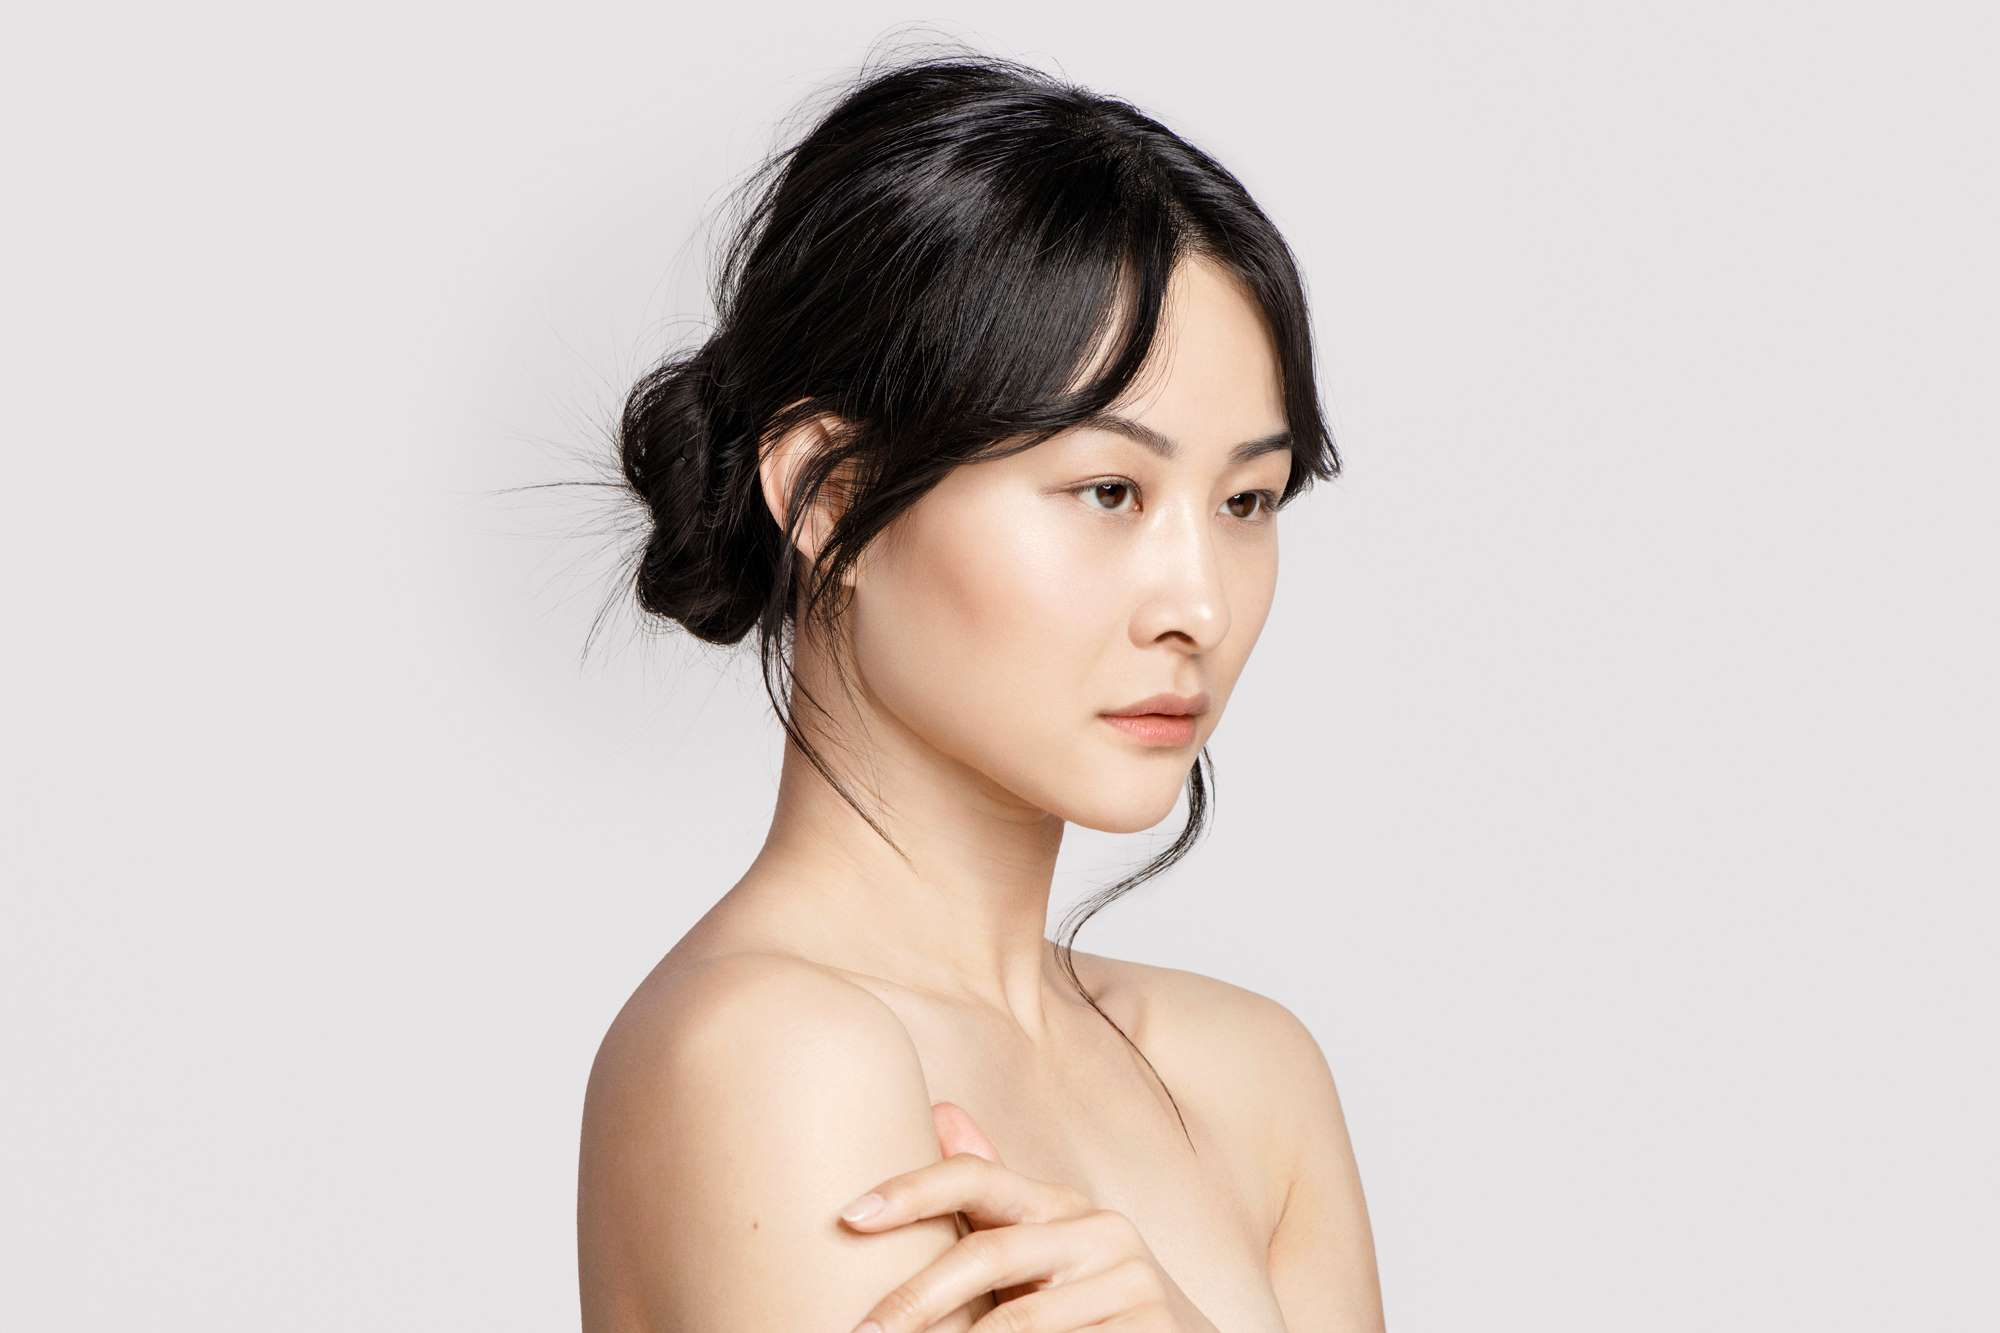 Asian female with naked shoulders in front of a white background